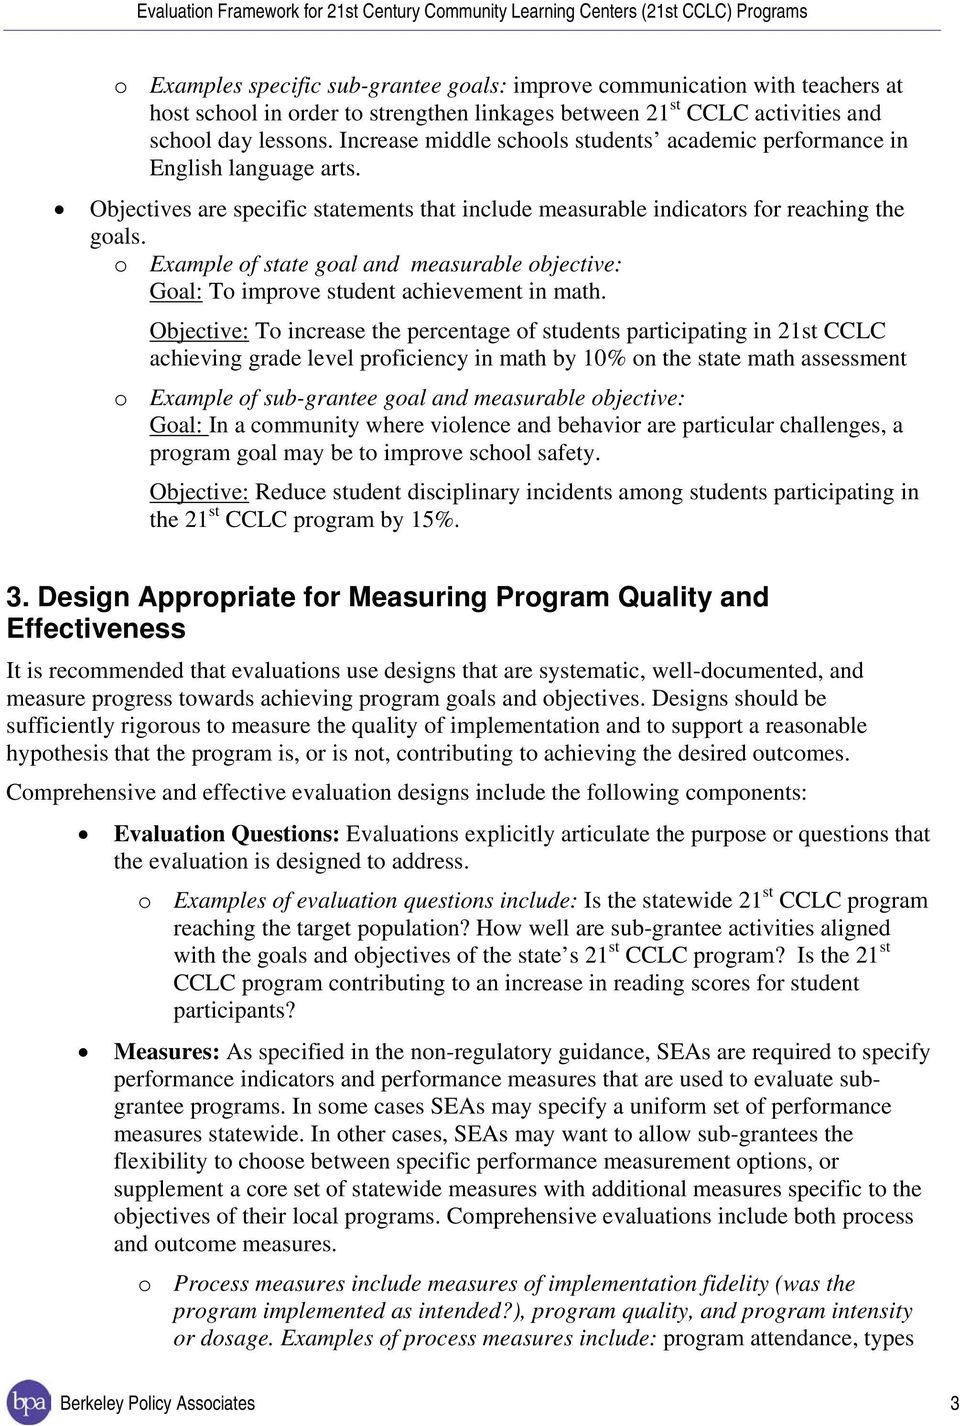 o Example of state goal and measurable objective: Goal: To improve student achievement in math.